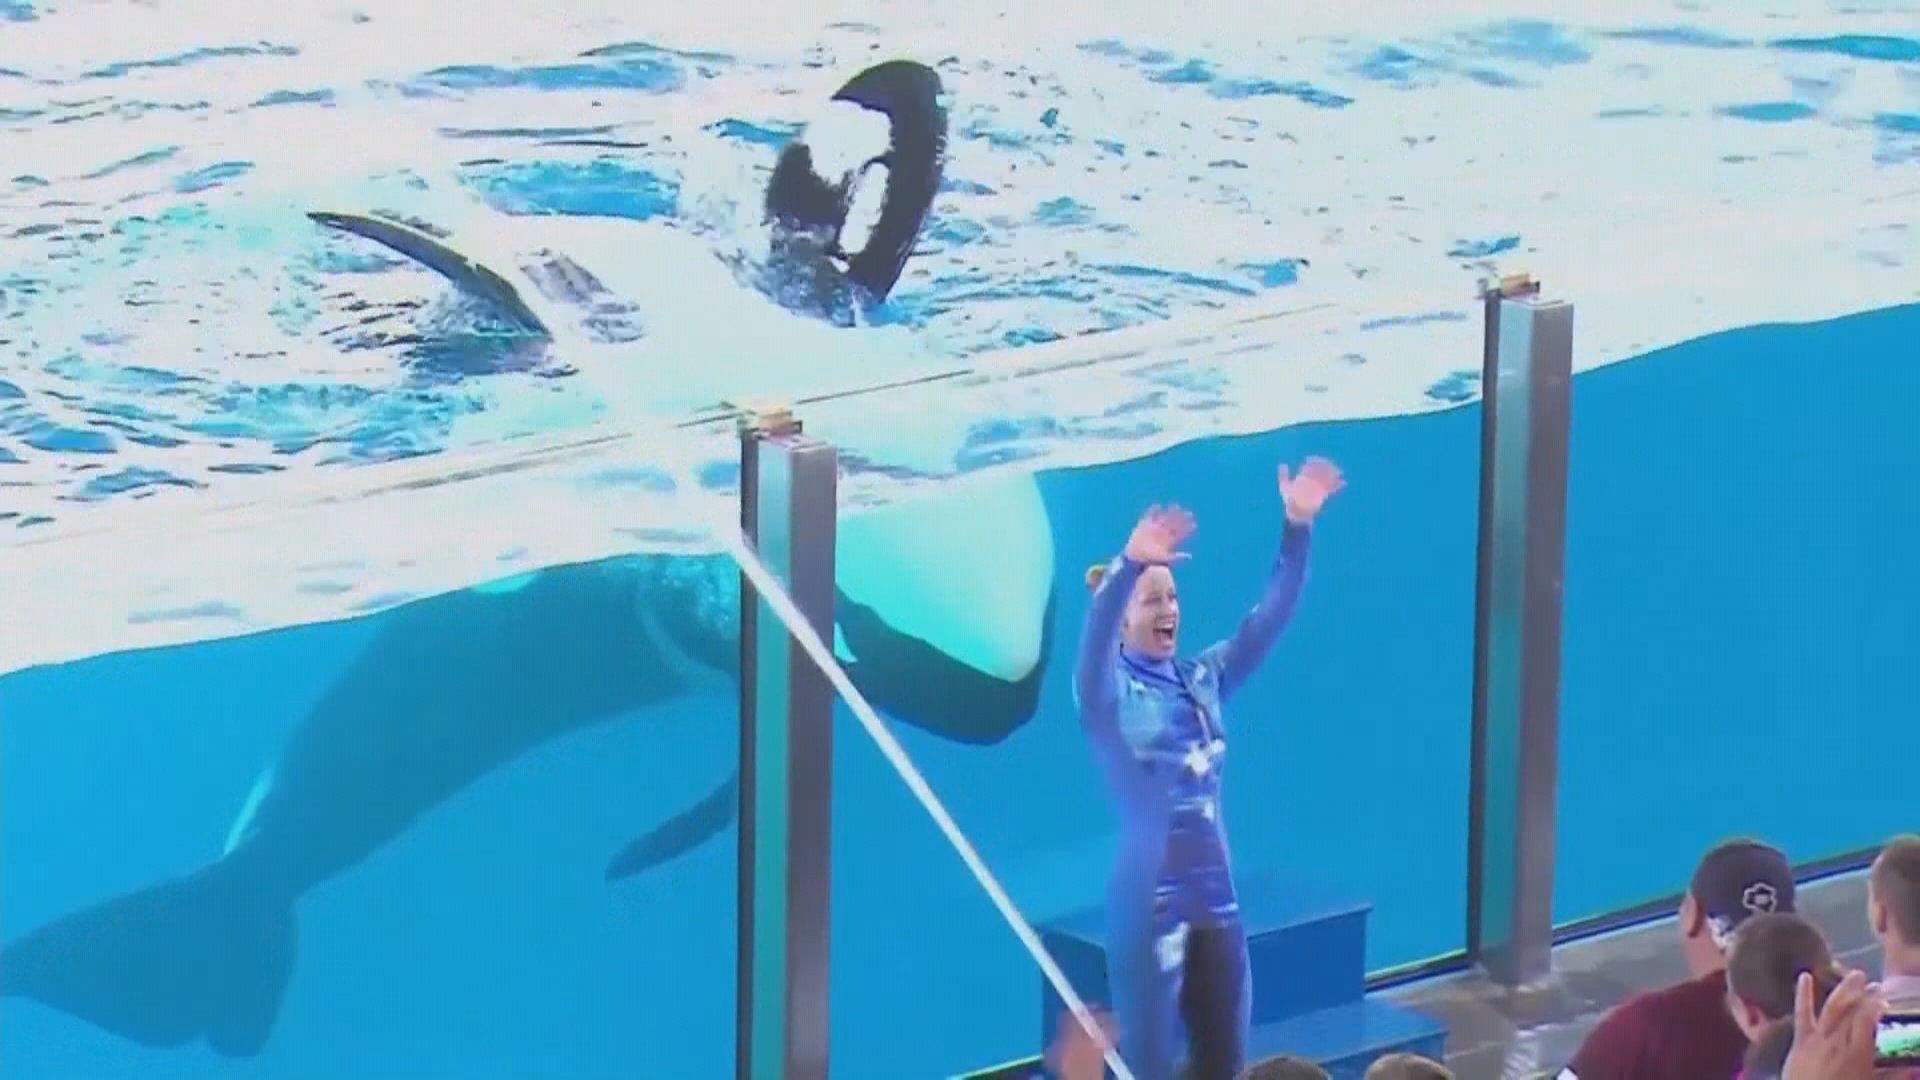 APNewsBreak: Baby orca! Last killer whale born at SeaWorld class=